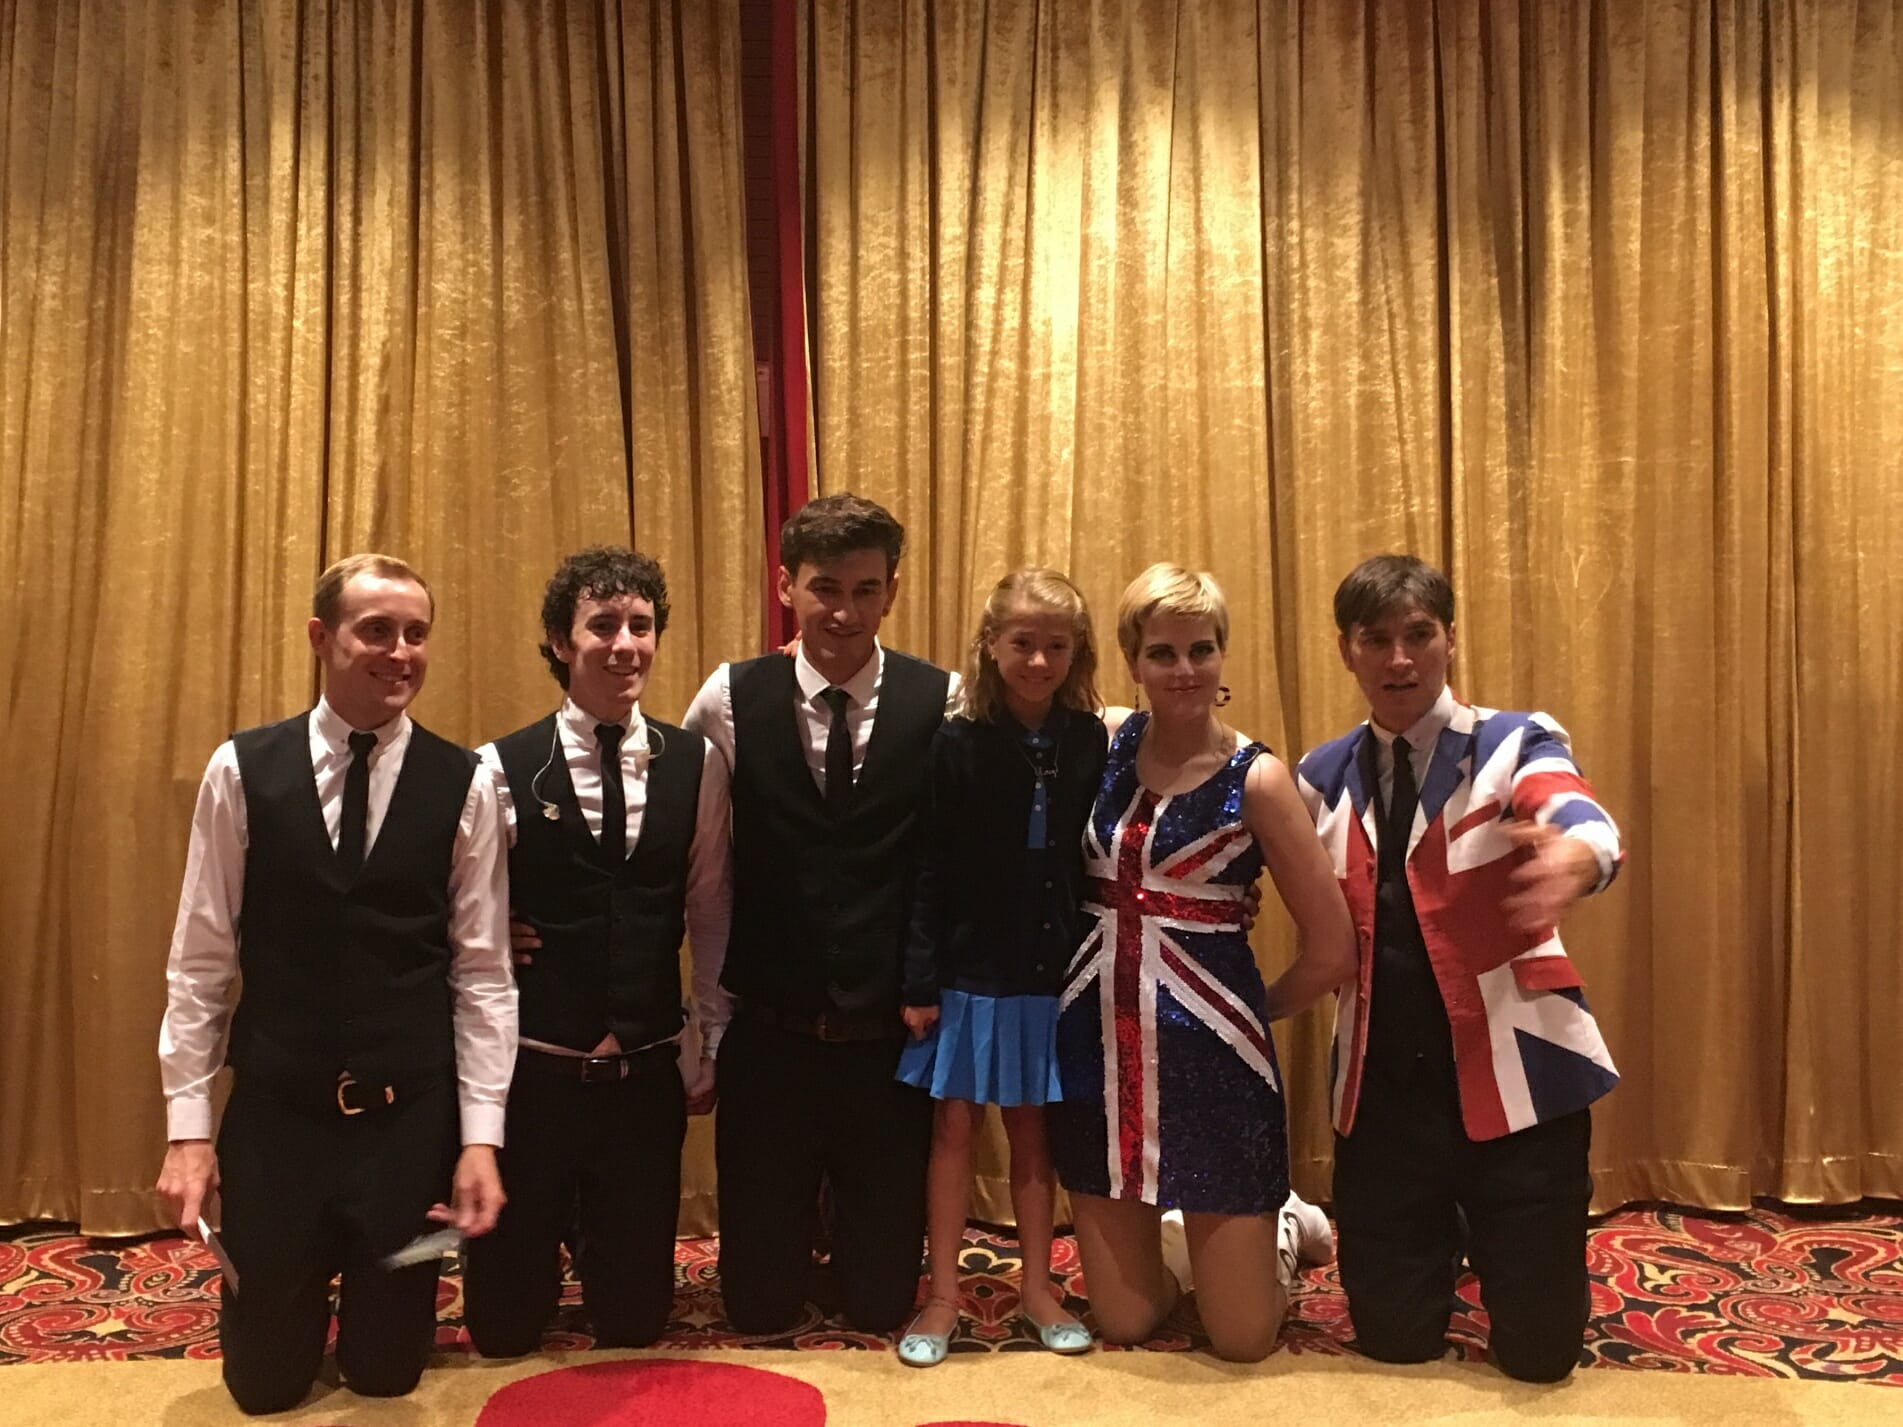 royal theater, 60s band, 60s band south west, 60s tribute band london, sixties tribute band, sixties band, sixties tribute hampshire, 60s tribute band Hants, 60's tribute band in hants, zoots 60s band, zoots sixties band, 60s tribute show, sixties tribute show, 60s tribute south, 60s tribute hampshire